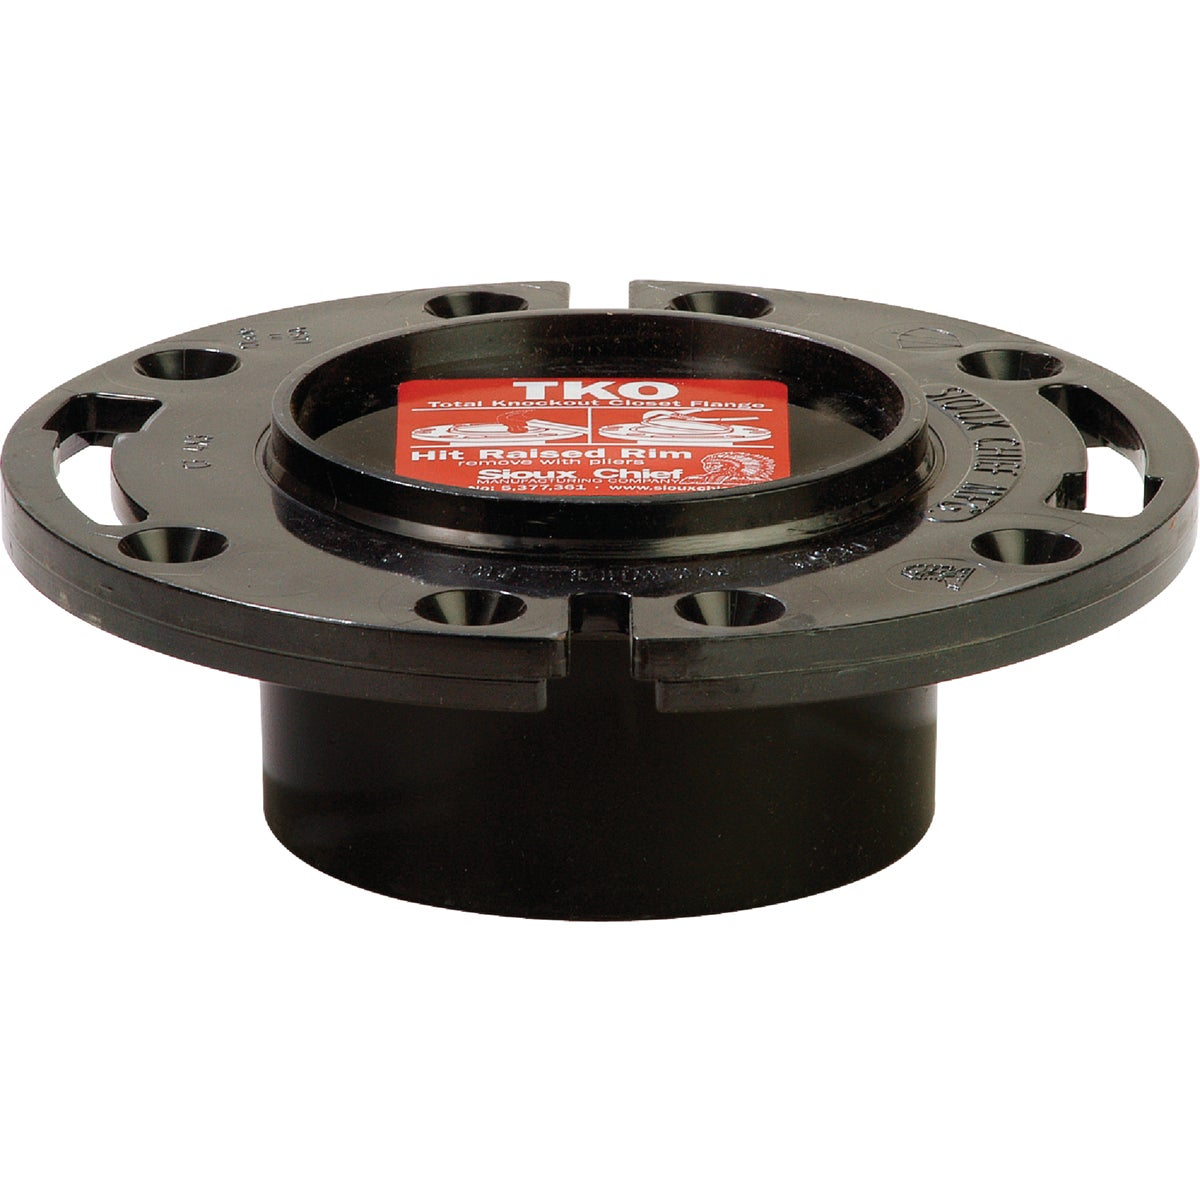 4X3 K/O ABS CLOST FLANGE